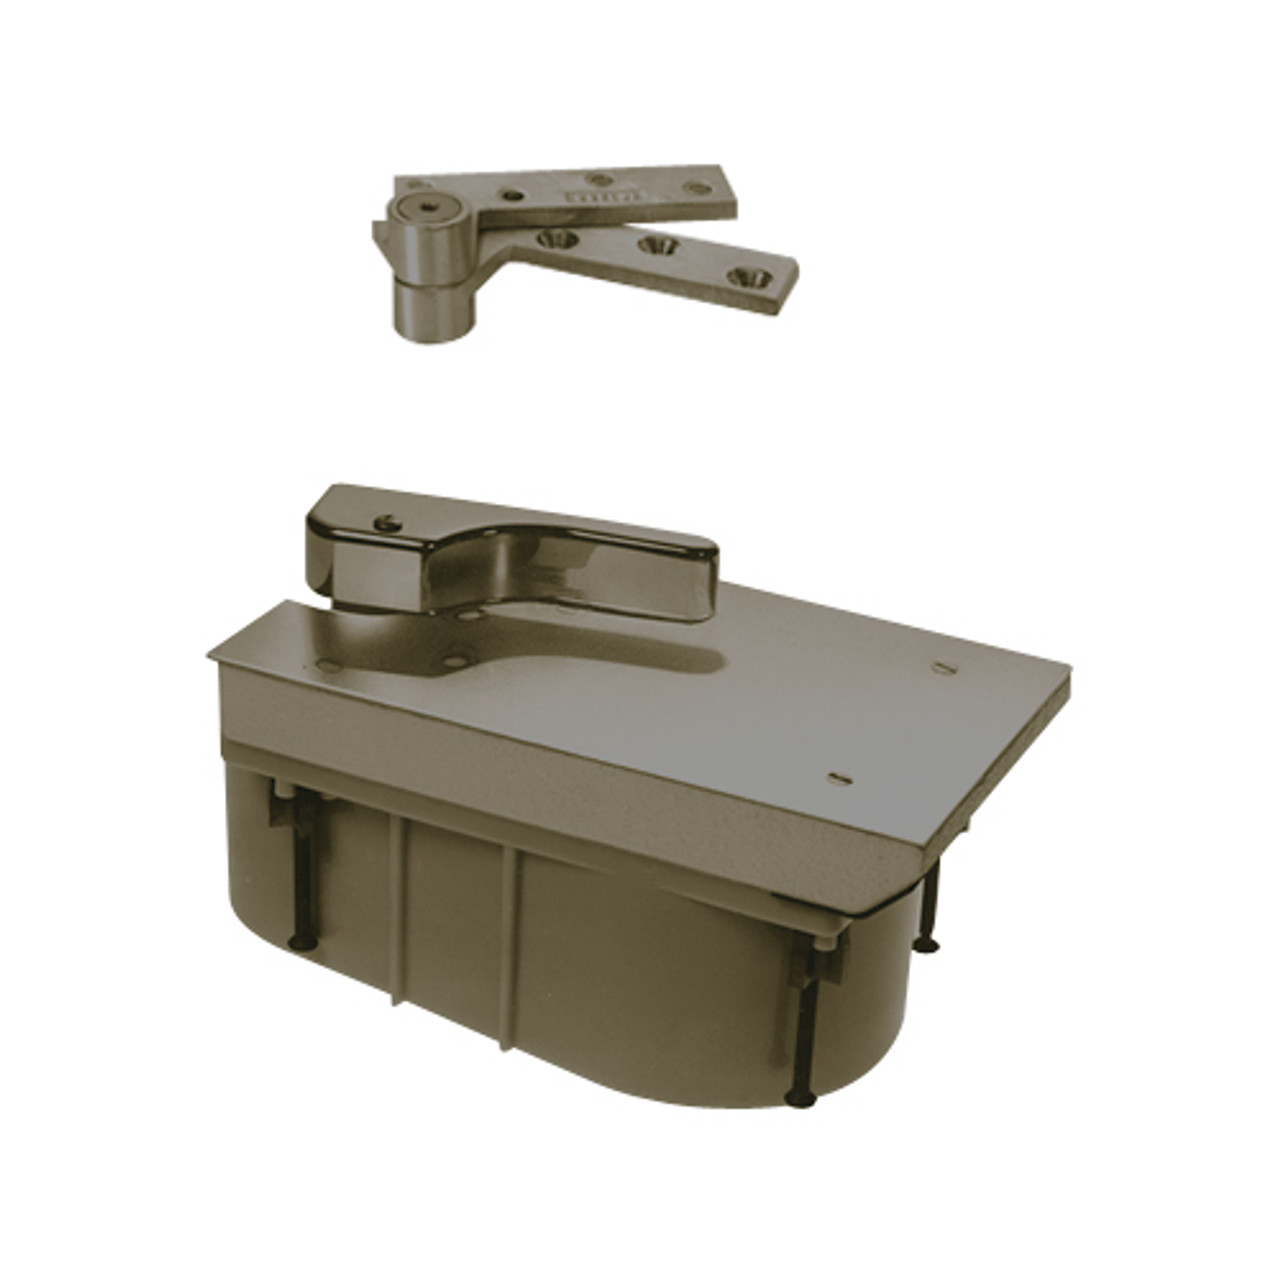 PHQ27-85S-RH-613 Rixson 27 Series Heavy Duty Quick Install Offset Hung Floor Closer in Oil Rubbed Bronze Finish